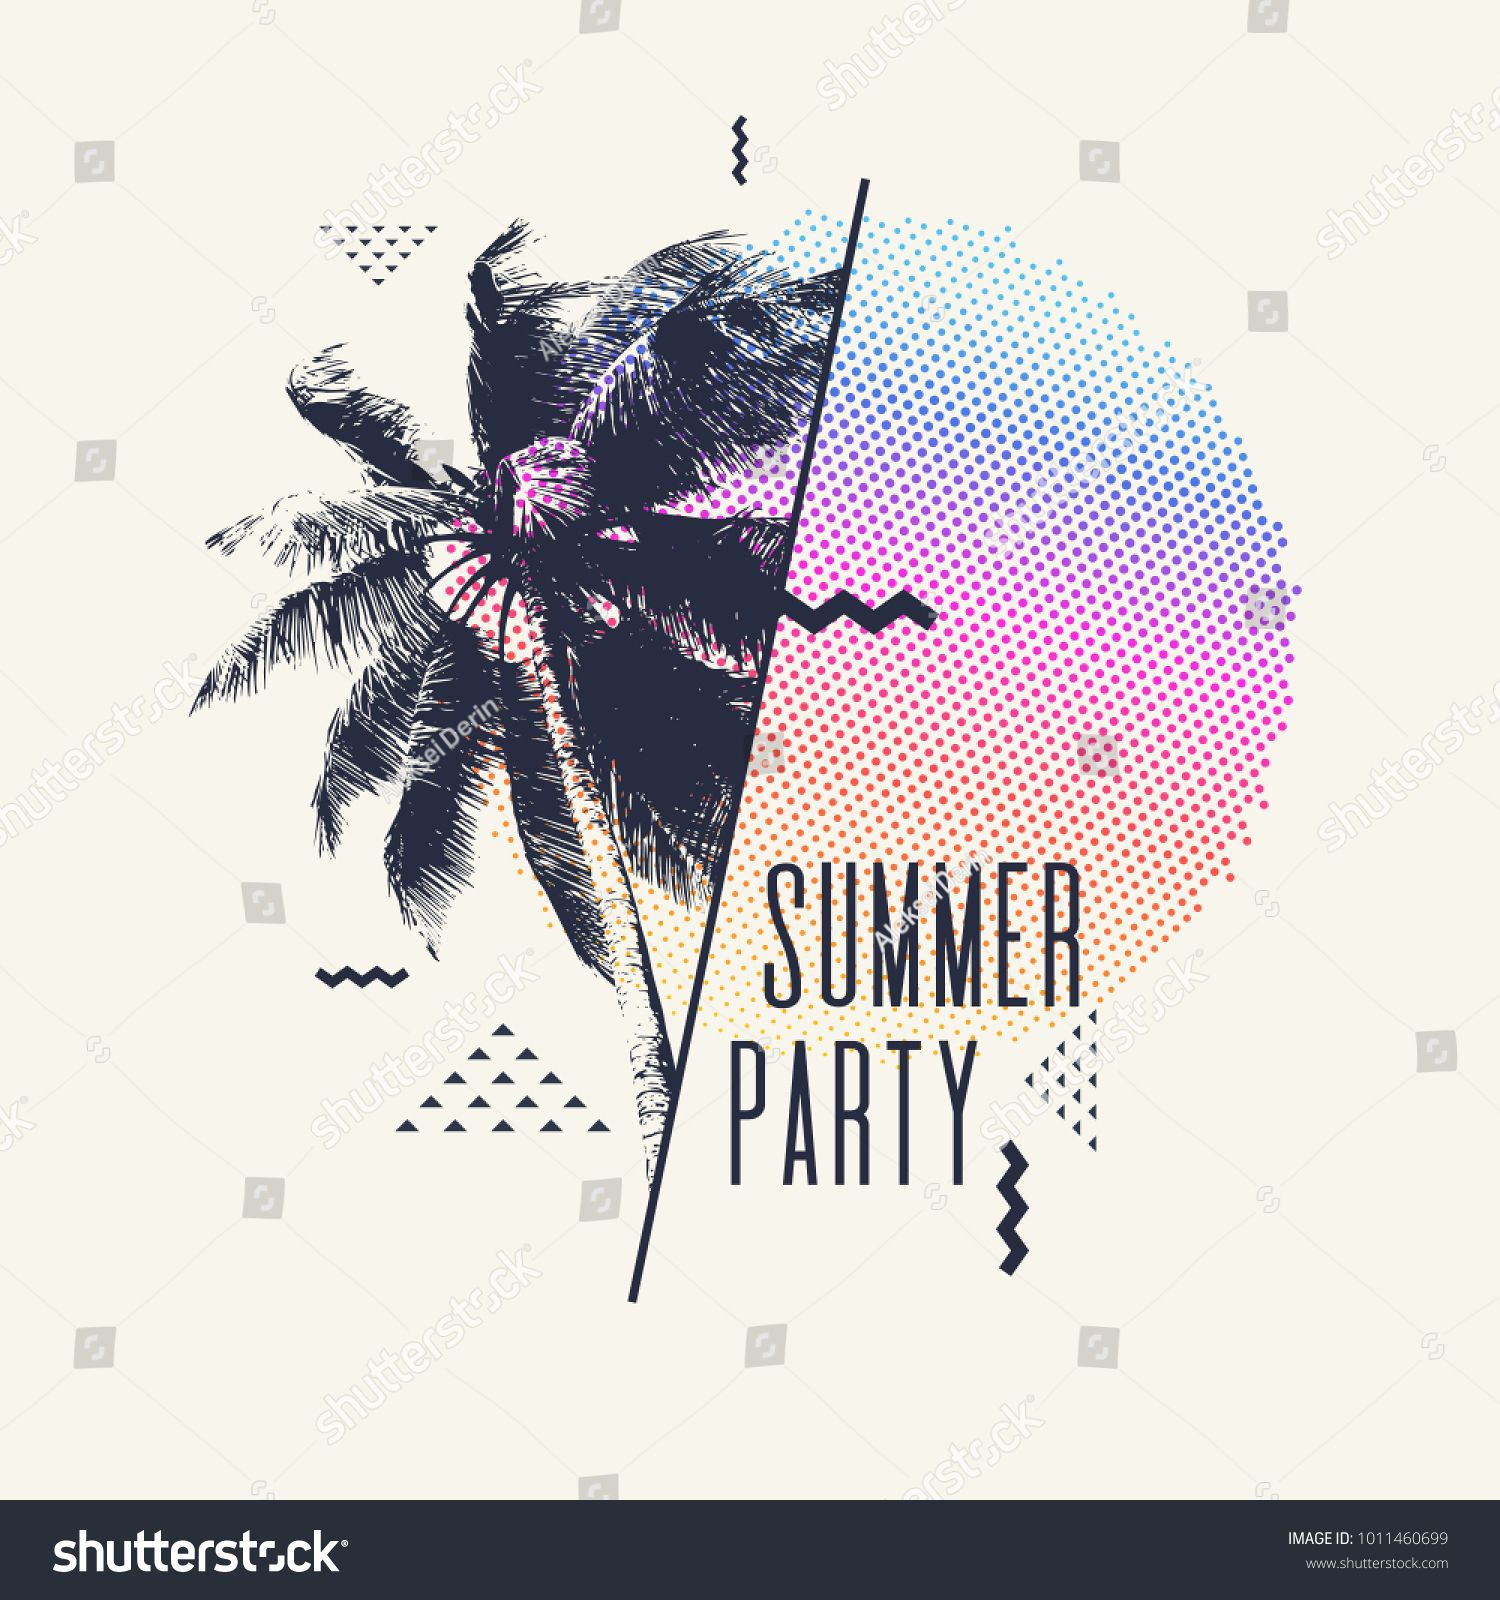 Summer Party Modern Poster With Palm Tree And Geometric Graphic